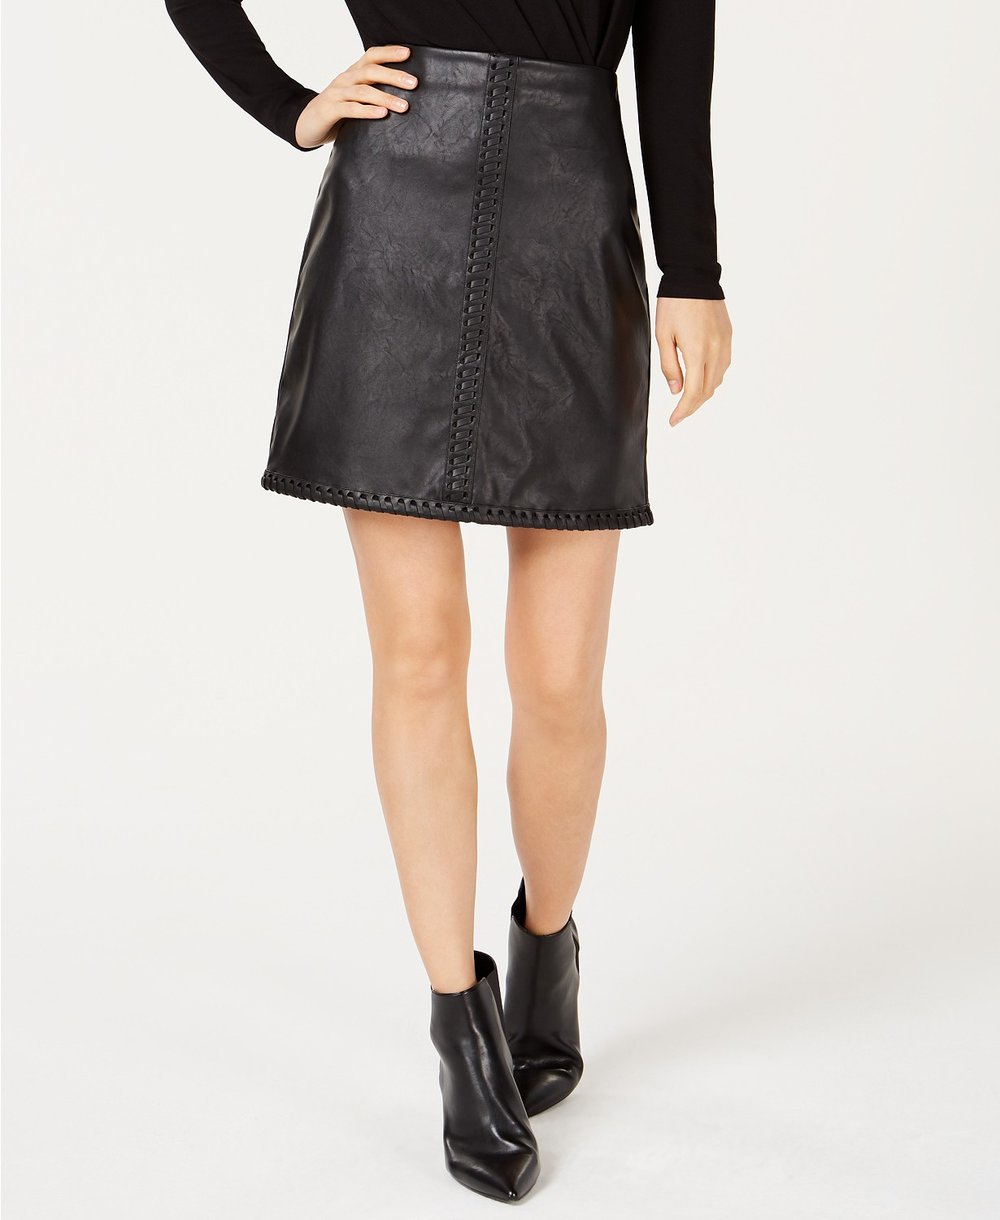 INC International Concepts     I.N.C. Faux-Leather Whipstitched Skirt. Macy's. Was: $69. Now: $54 with code: SCORE.